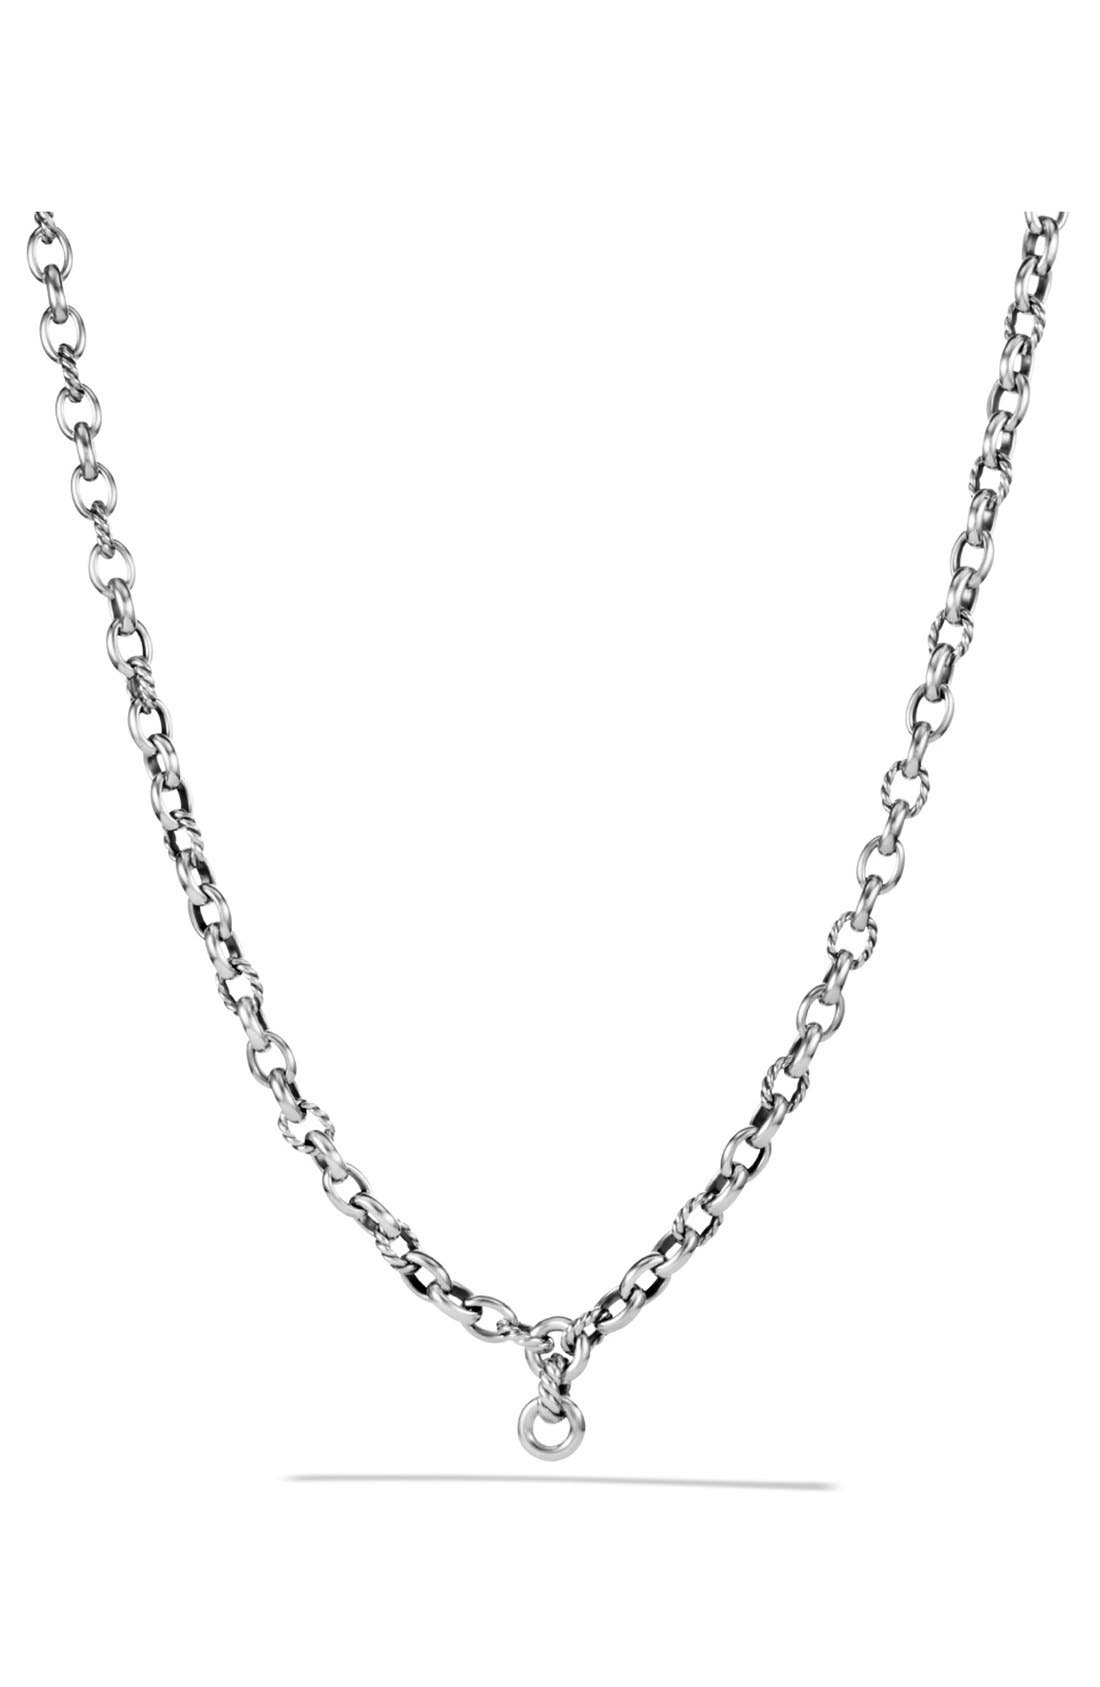 'Chain' Oval Link Chain Necklace,                         Main,                         color, SILVER